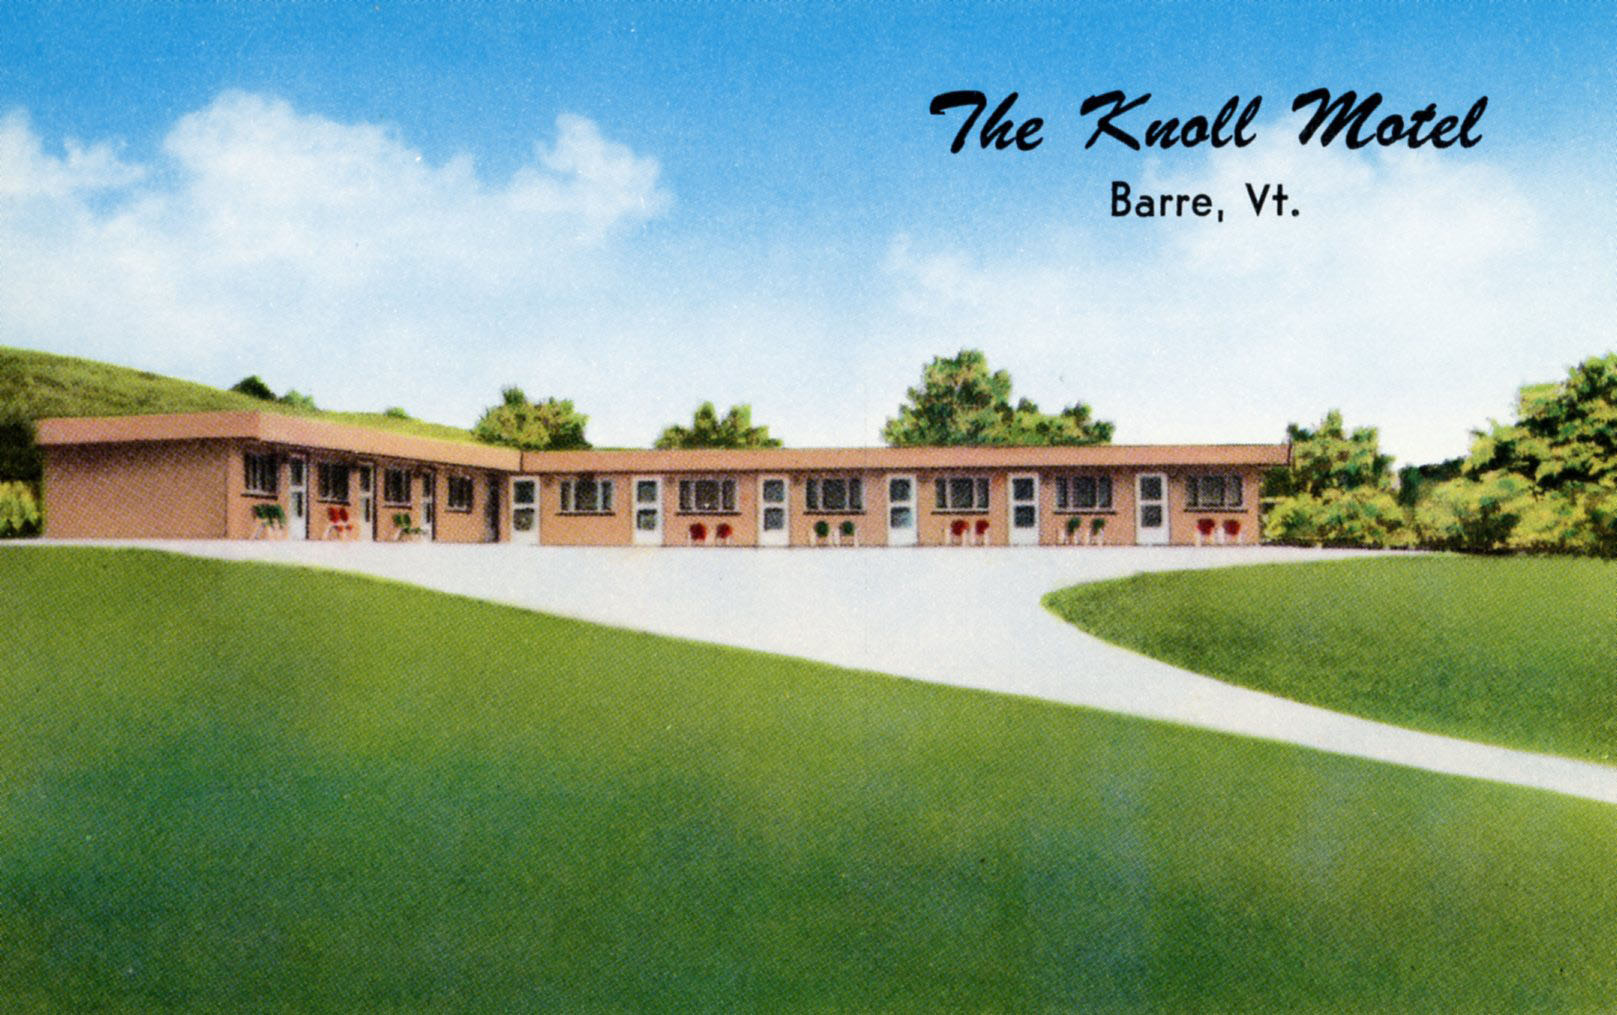 Postcard of the Knoll Motel